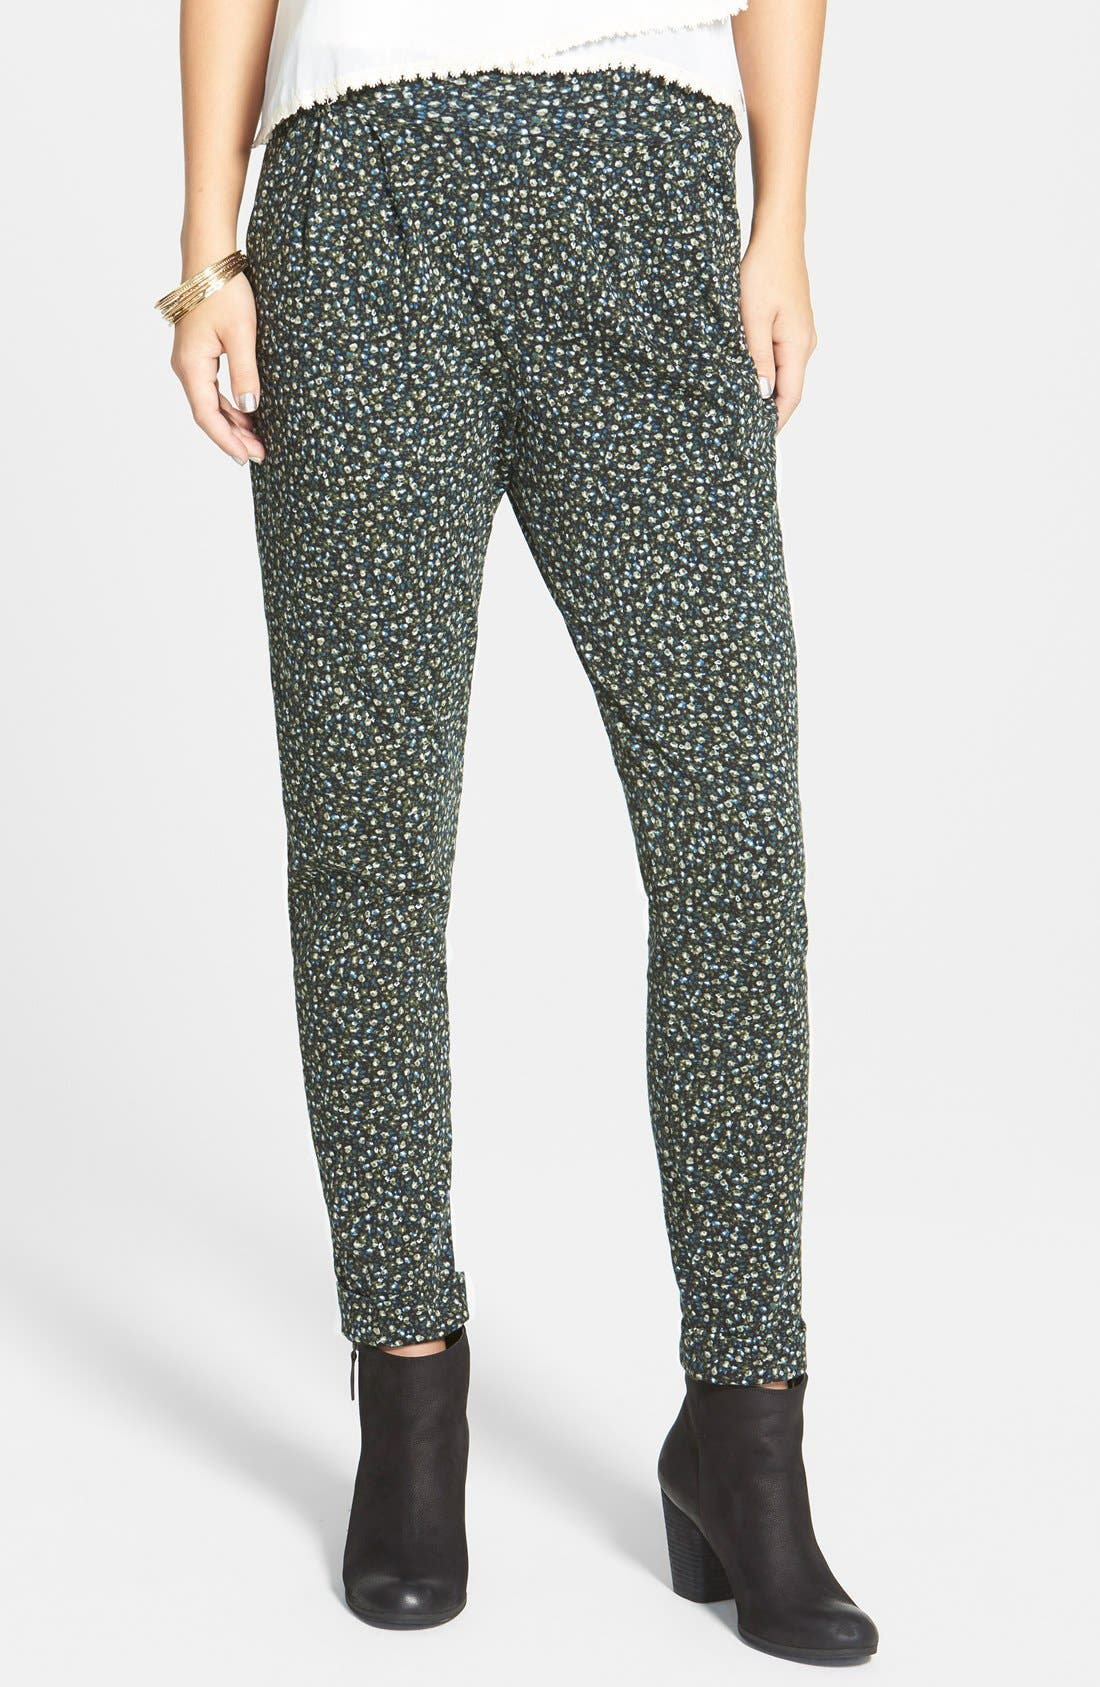 Alternate Image 1 Selected - Lily White Pleat Knit Slouchy Pants (Juniors)